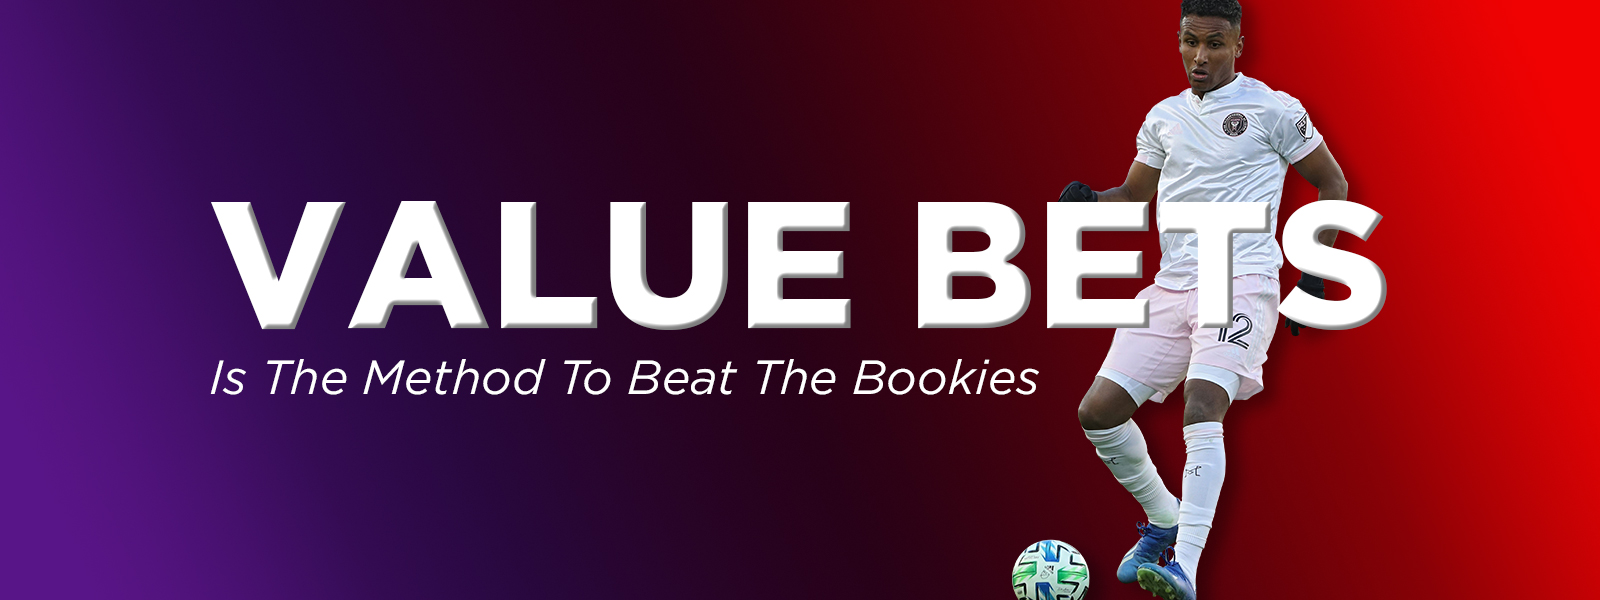 Value Bets Is The Best Method To Beat The Bookies